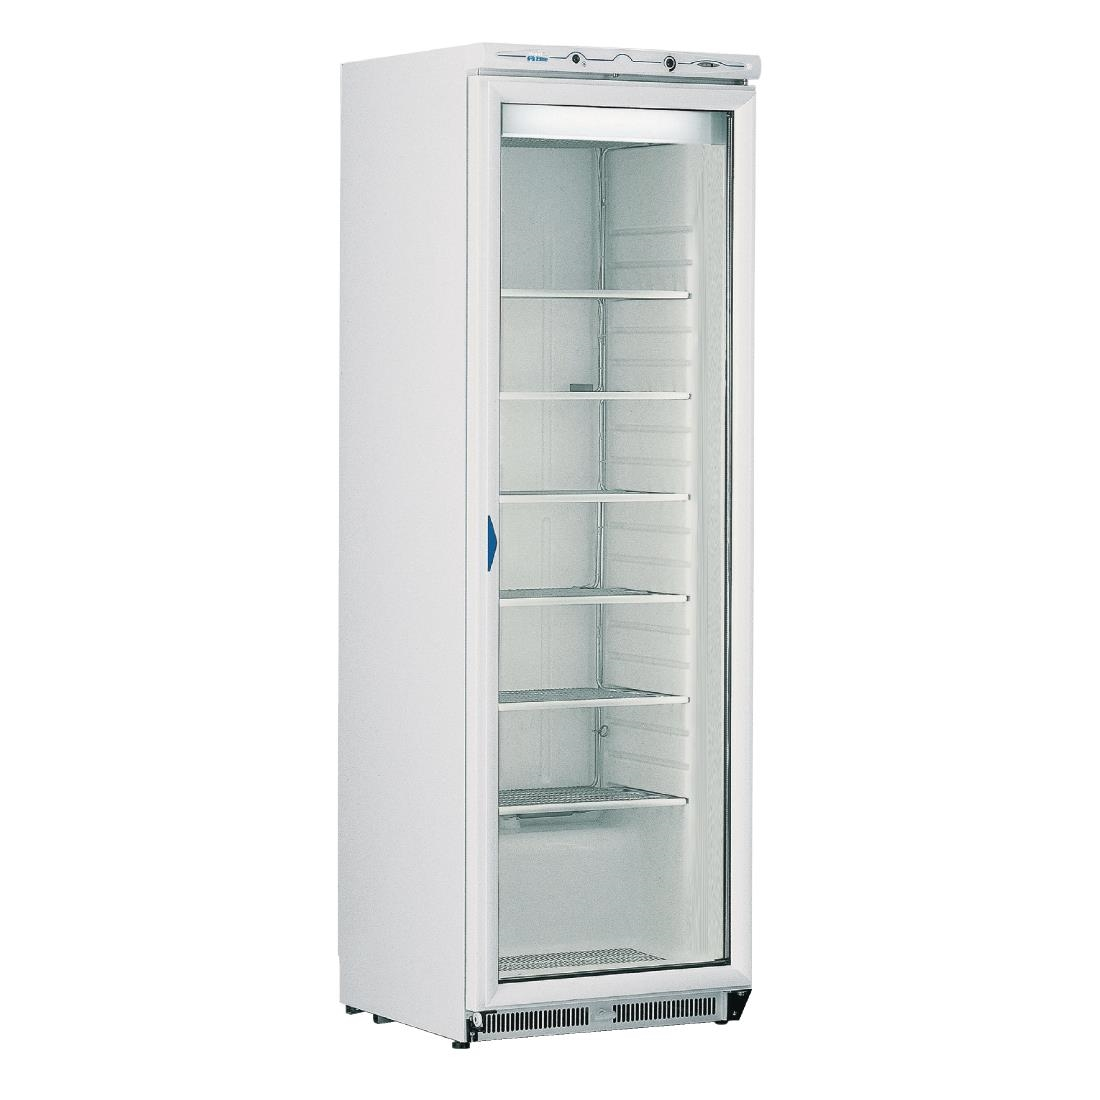 Image of Mondial Elite Glass Door Freezer 360 Ltr